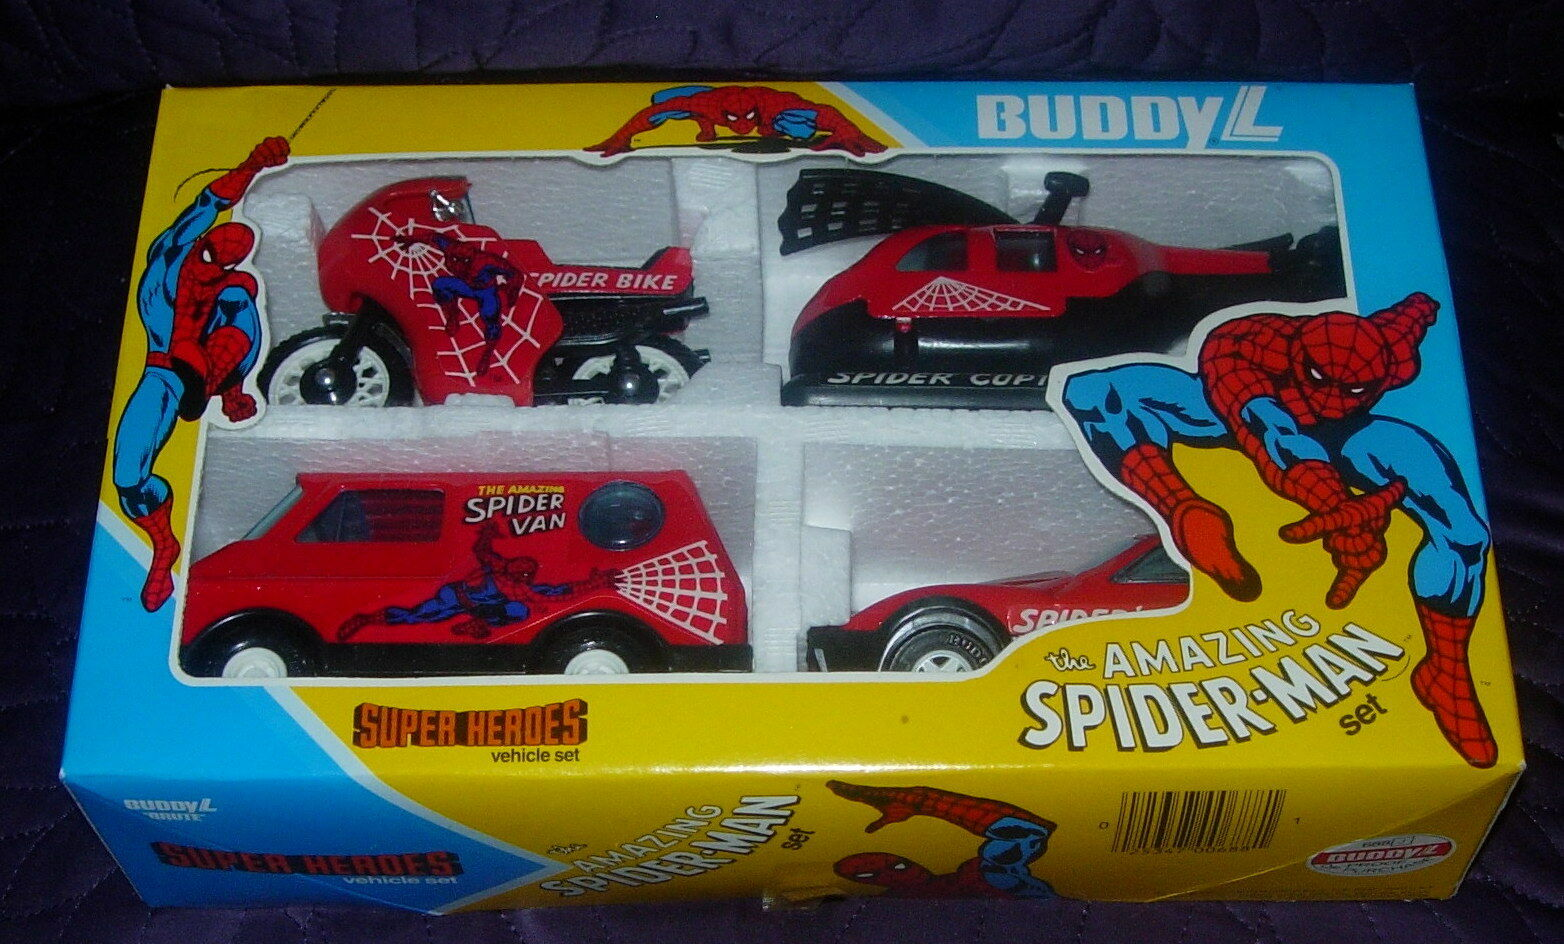 BUDDY L  AMAZING SPIDER-MAN VEHICLE SET  BOXED  1982  UNUSED  CLEAN  EARLY ISSUE